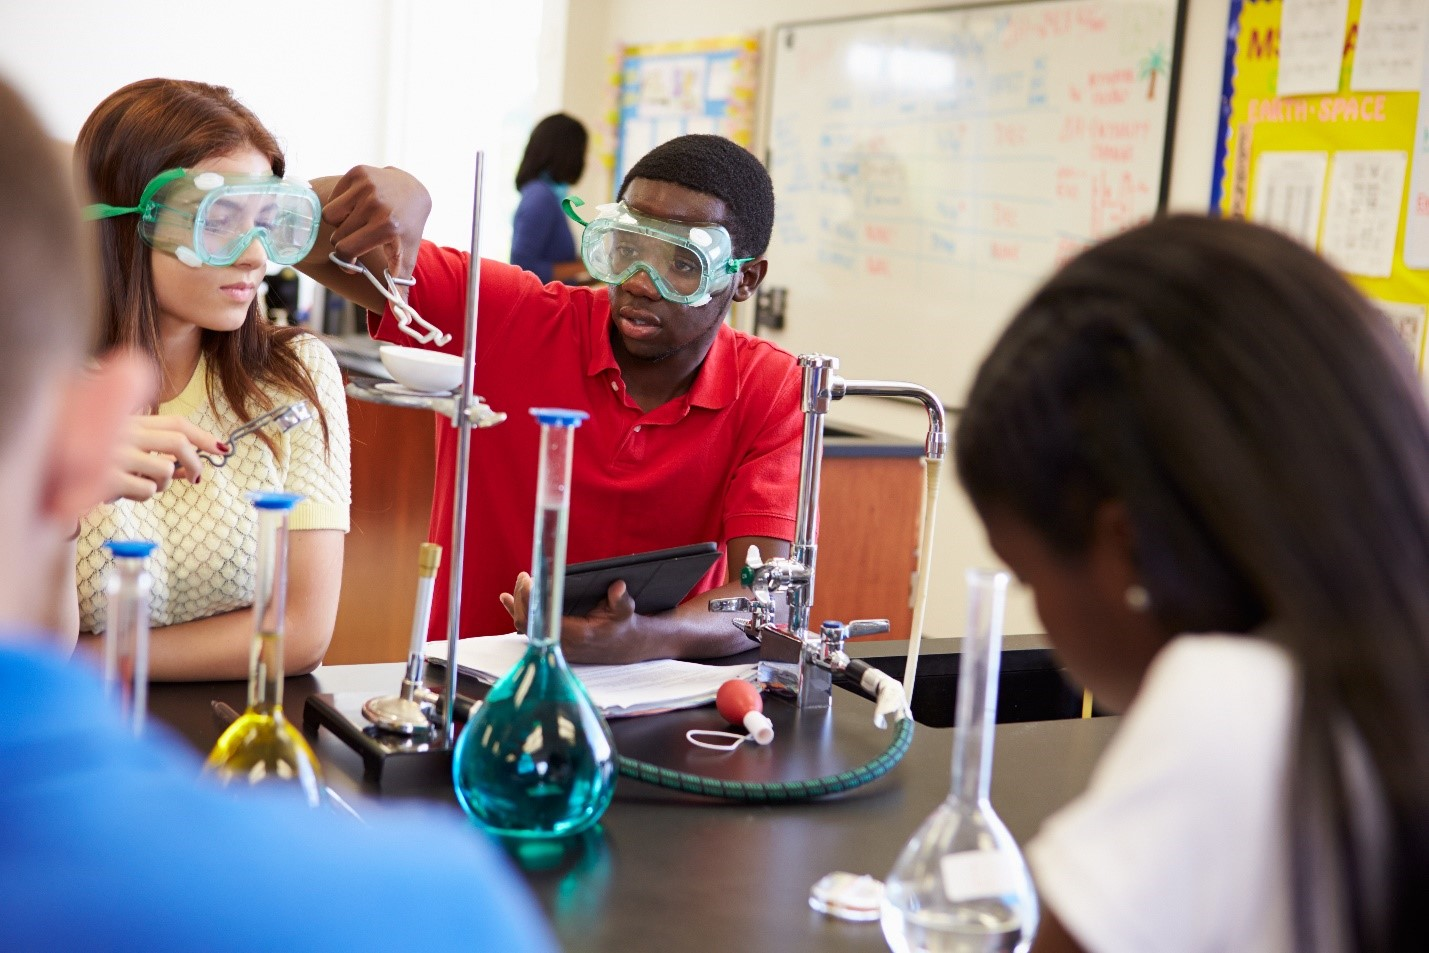 The Importance of Data Collection in Science Classrooms